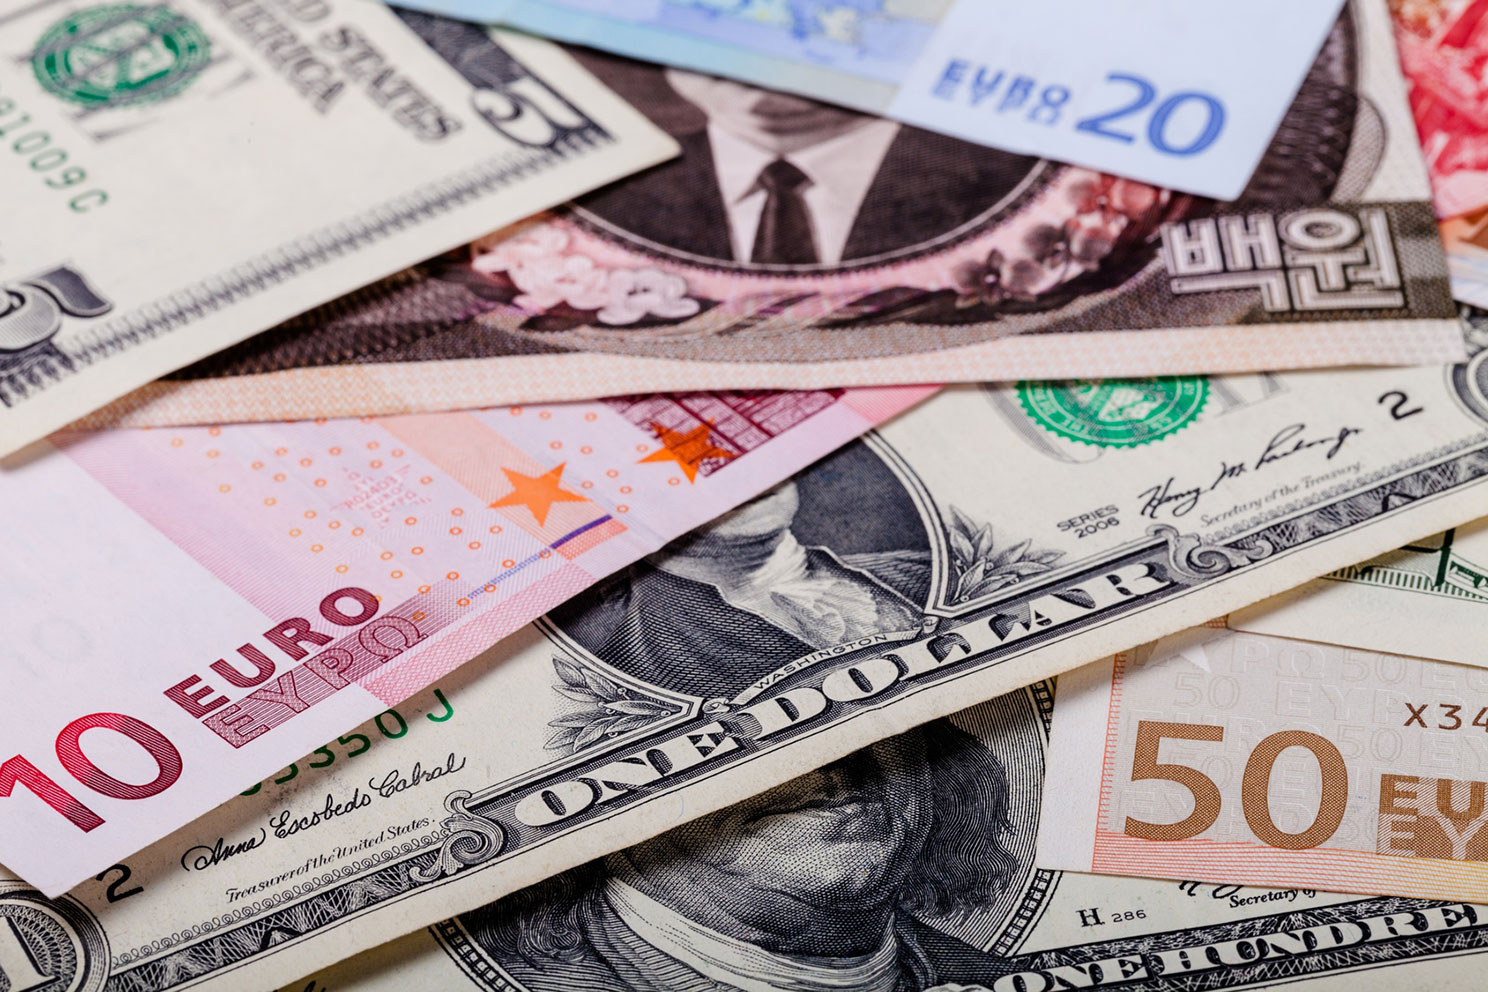 Is it necessary to exchange American currency for the currency of the destination country?